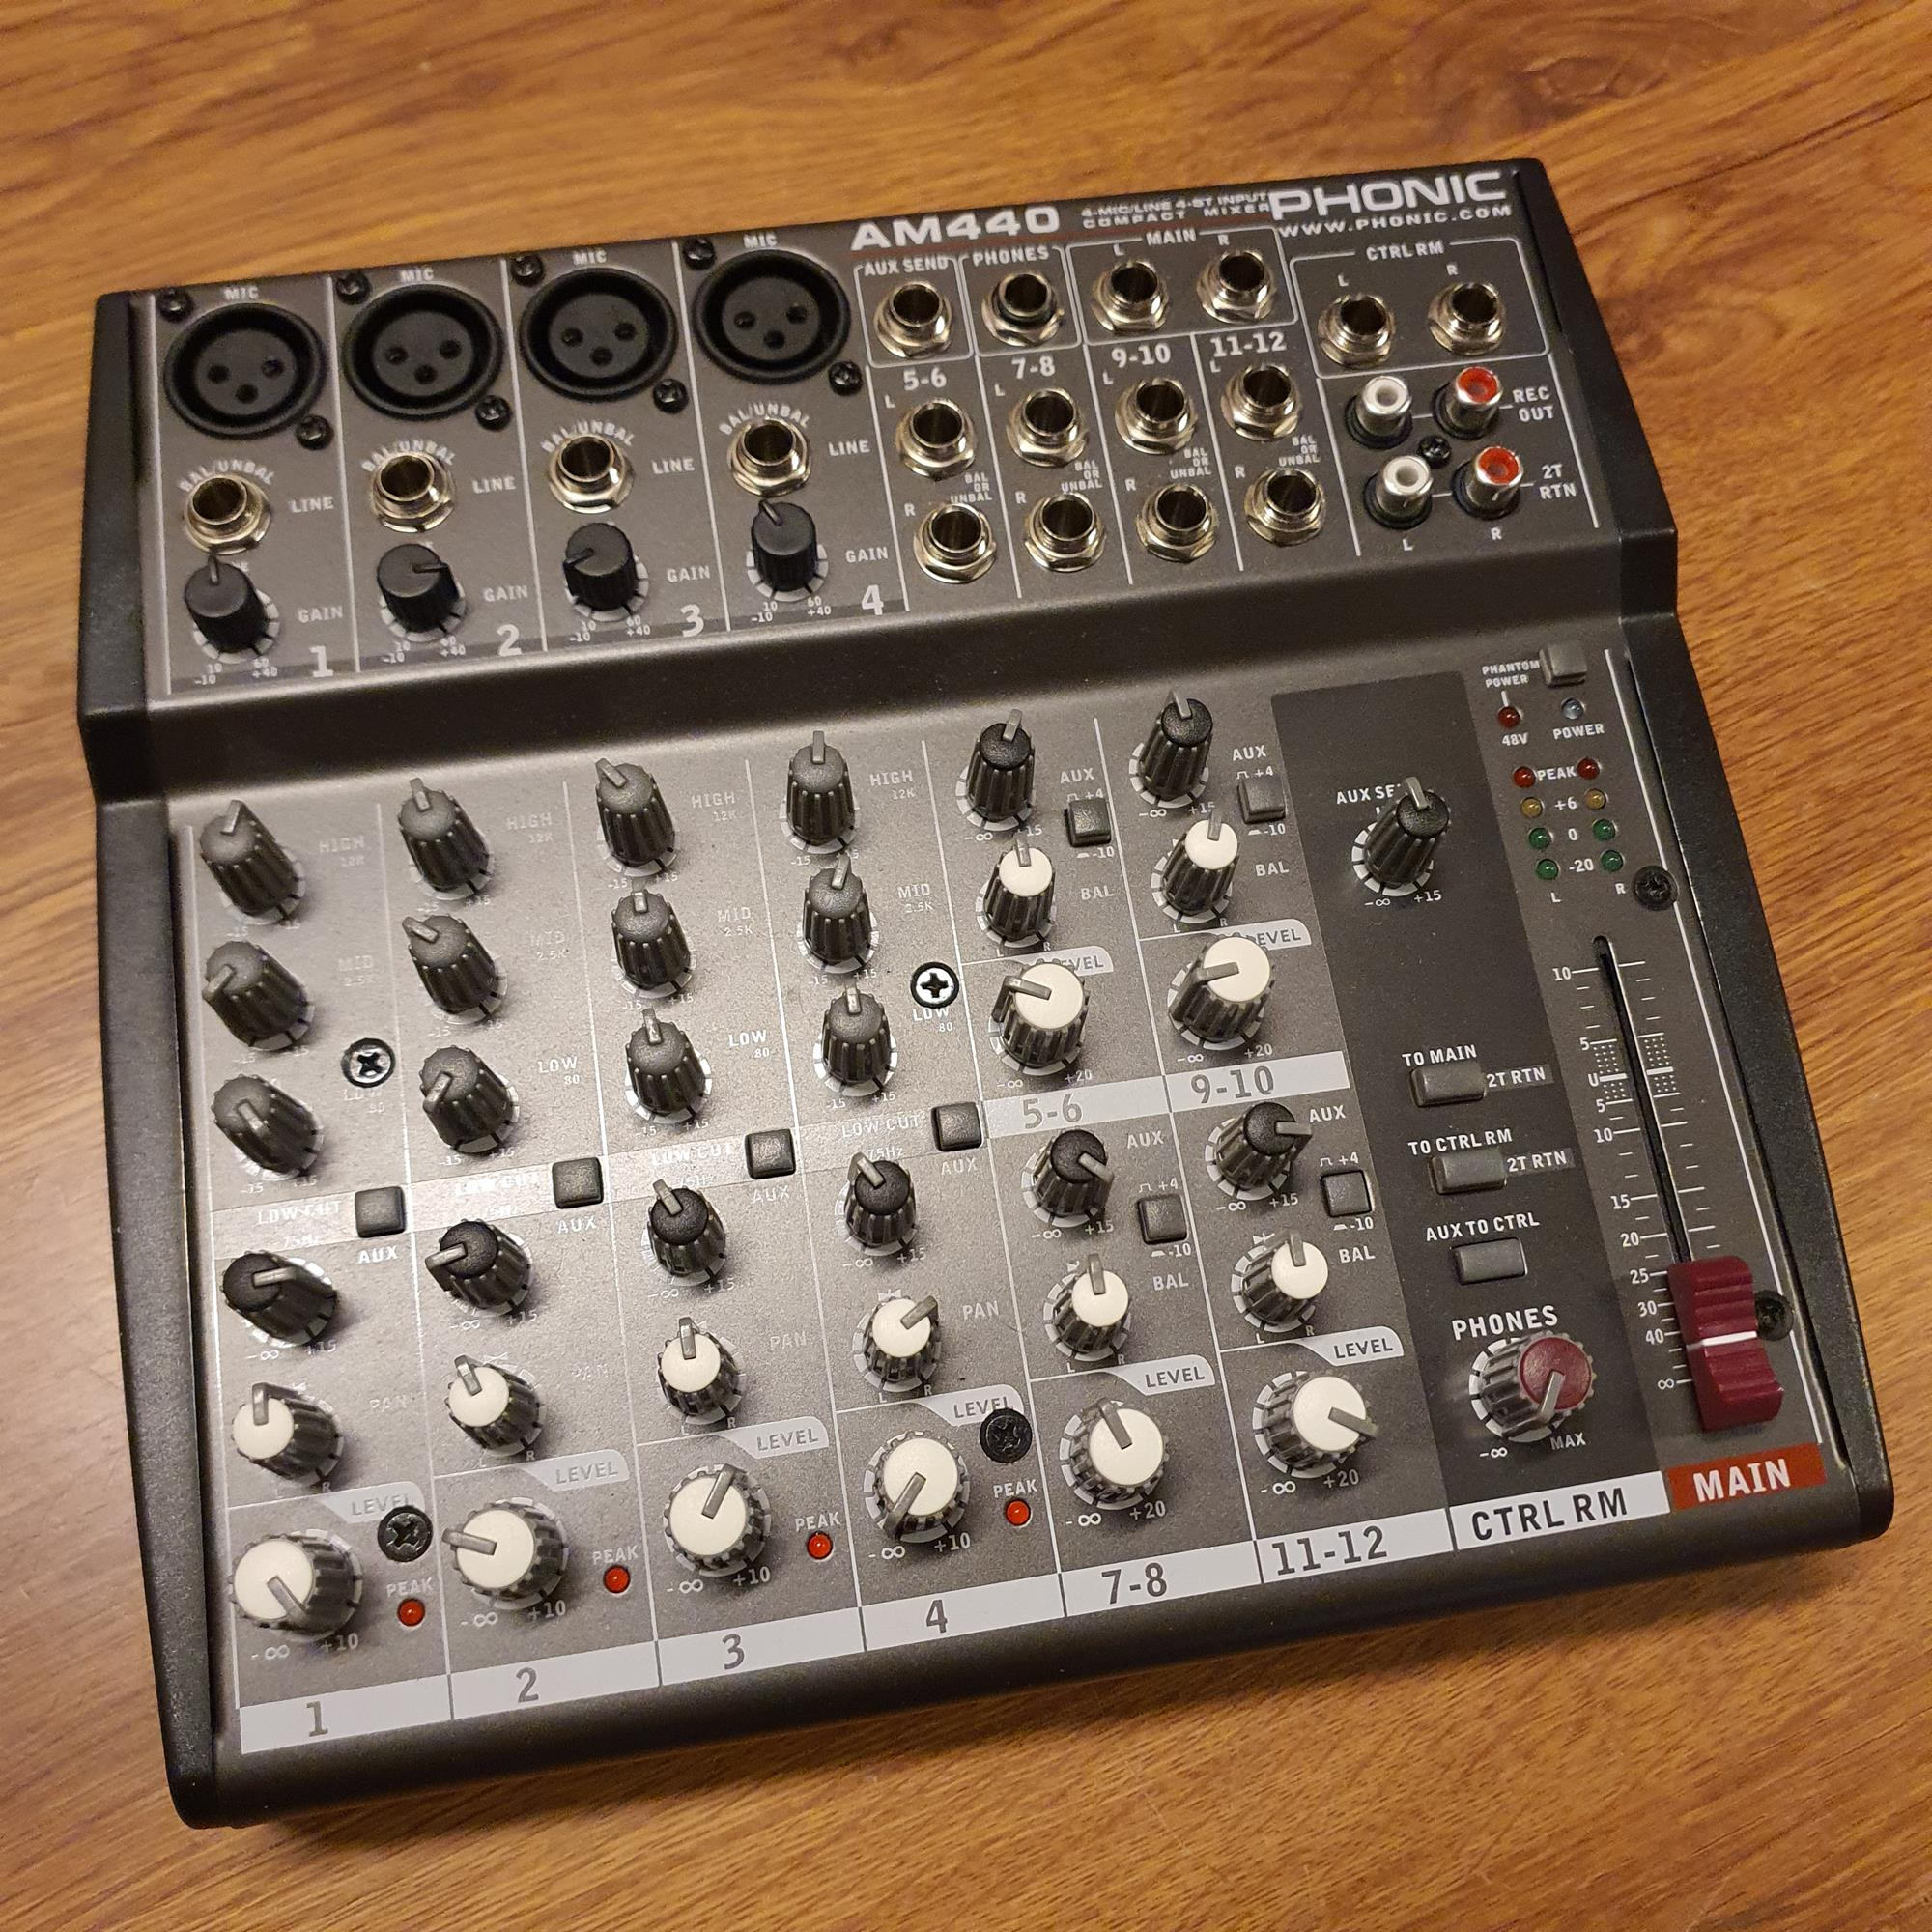 PHONIC-AM-440-MIXER-sku-1599315981776